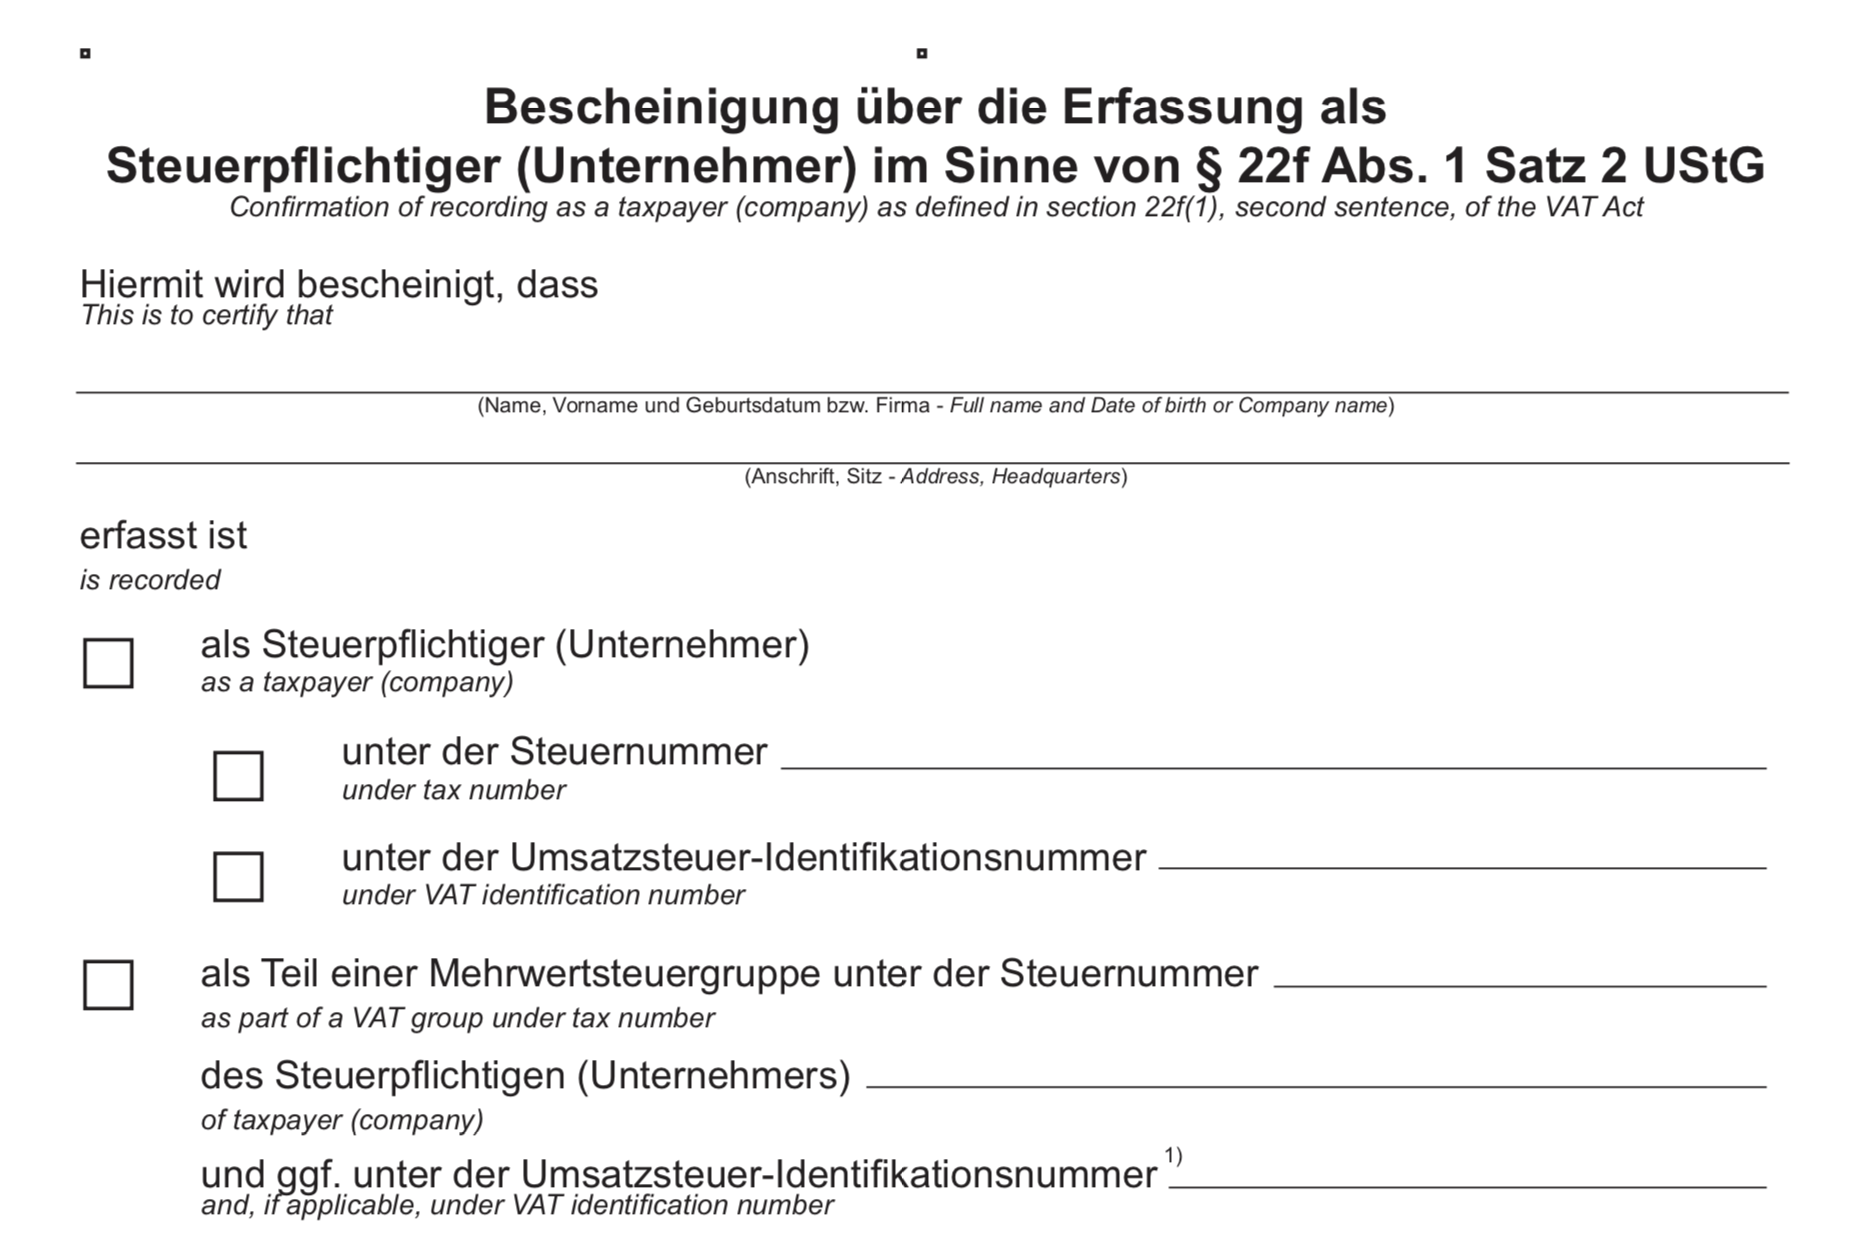 UPDATE: New German VAT law: How to avoid Amazon/Ebay account